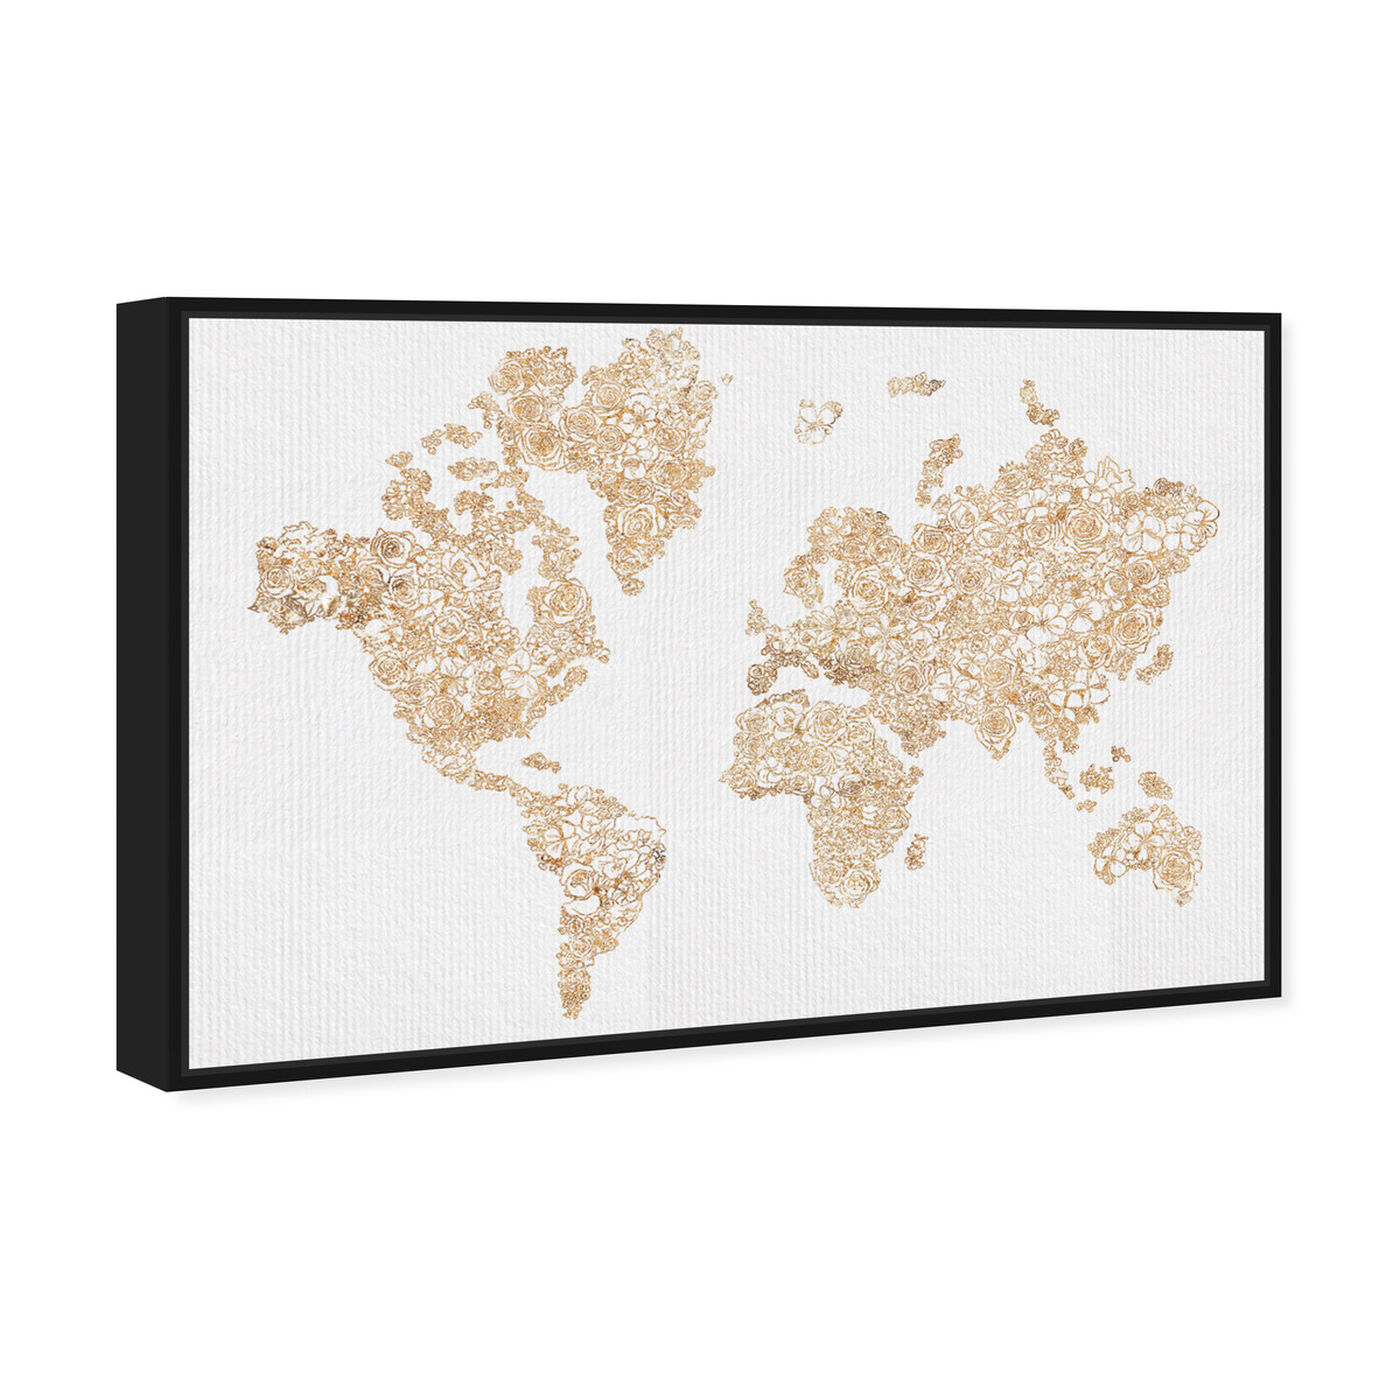 Angled view of Mapamundi Gold Floral featuring maps and flags and world maps art.